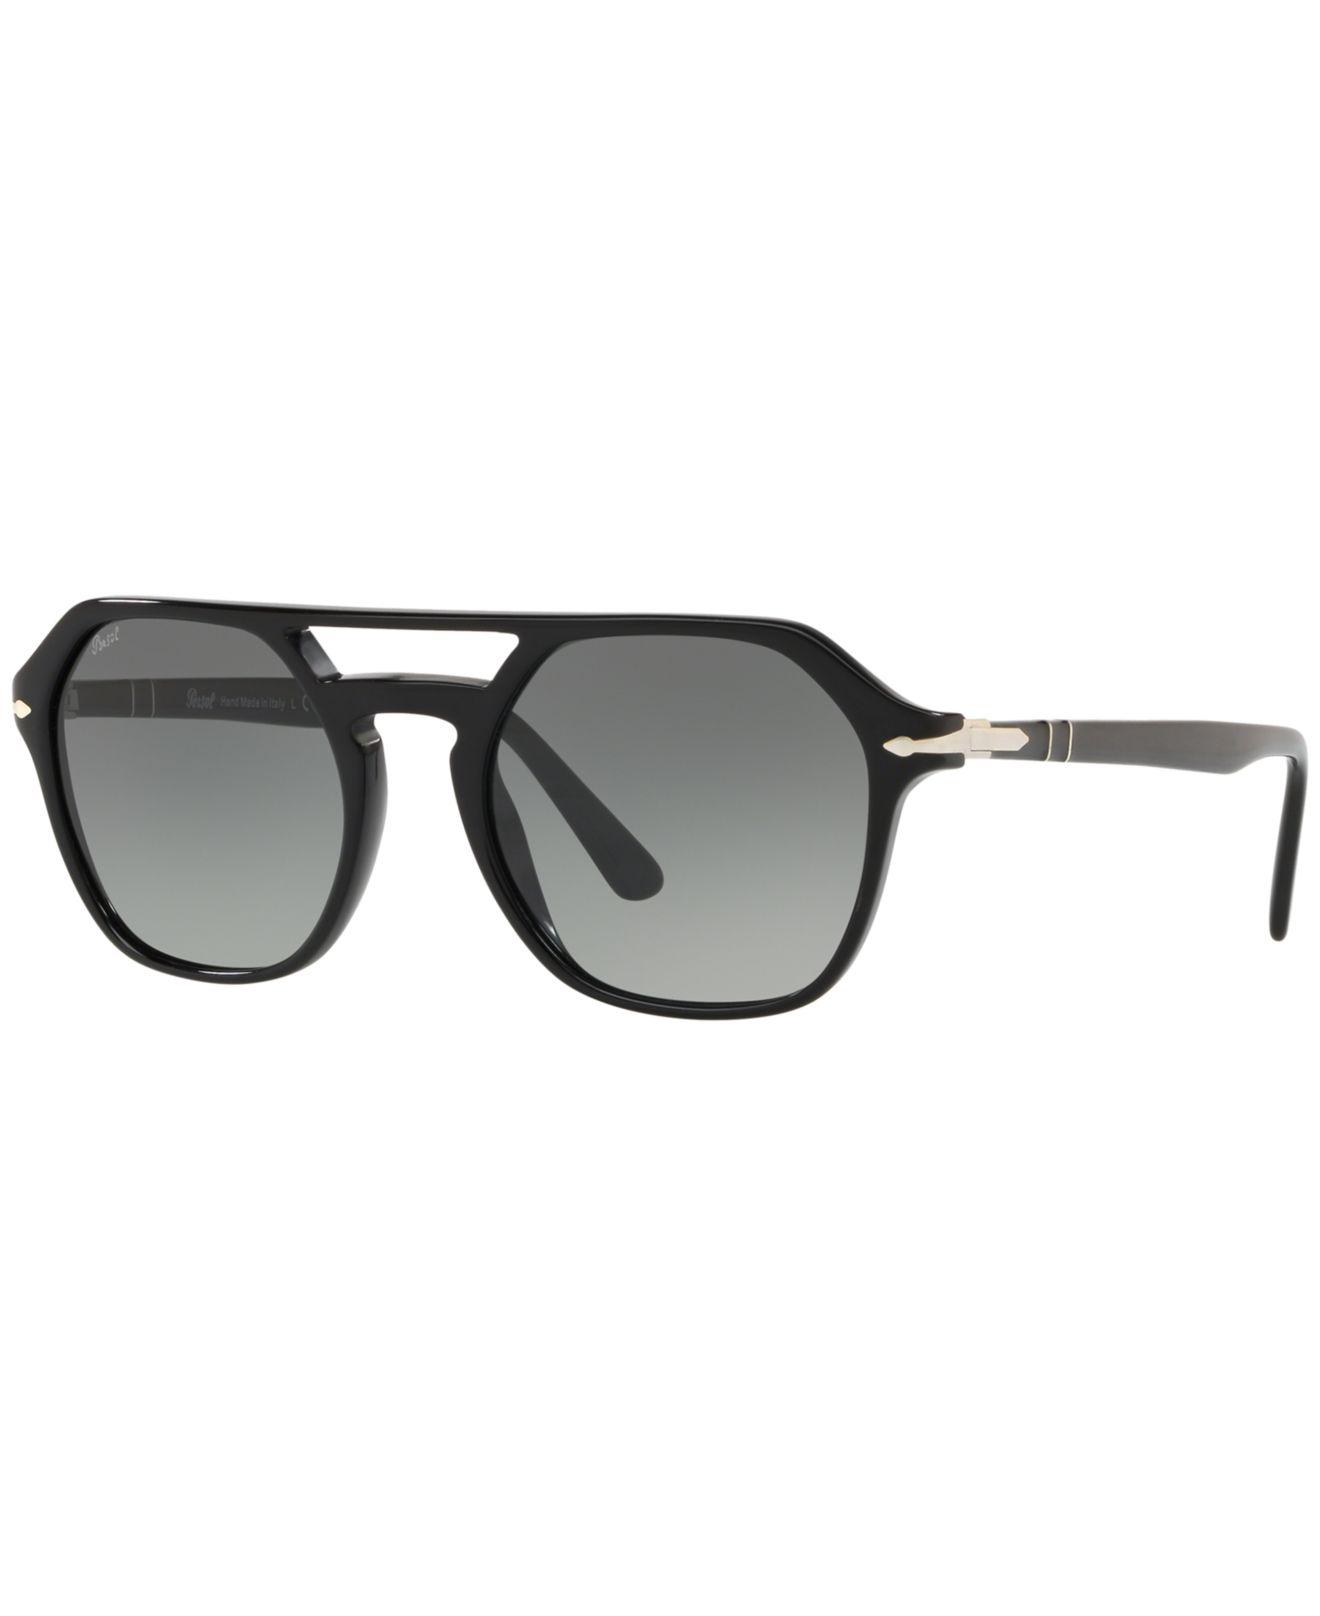 6c75890934 Lyst - Persol Po3206s in Gray for Men